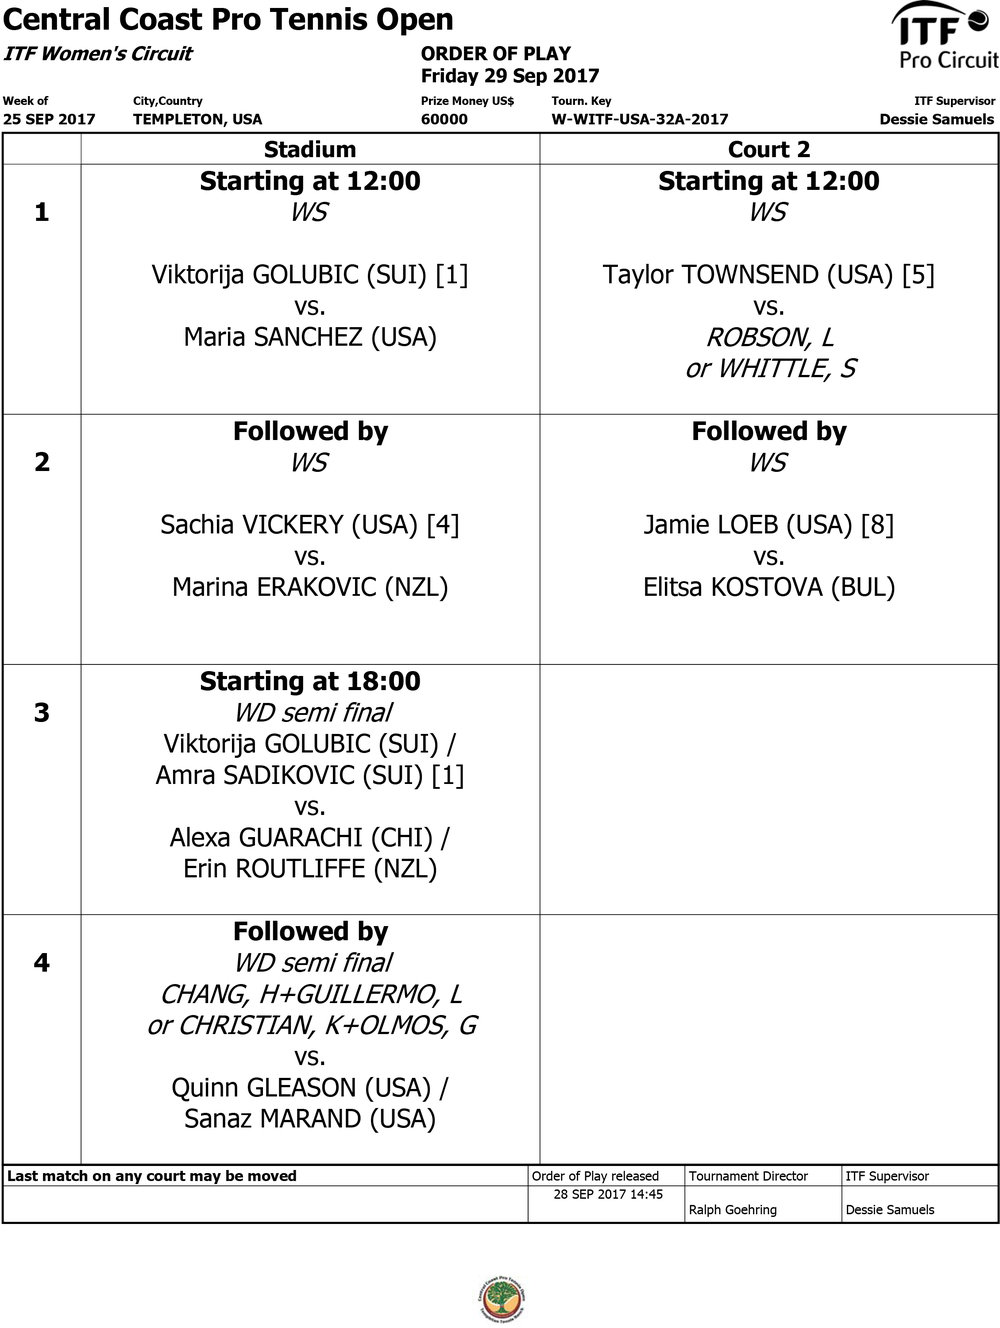 Friday Order of Play.jpg